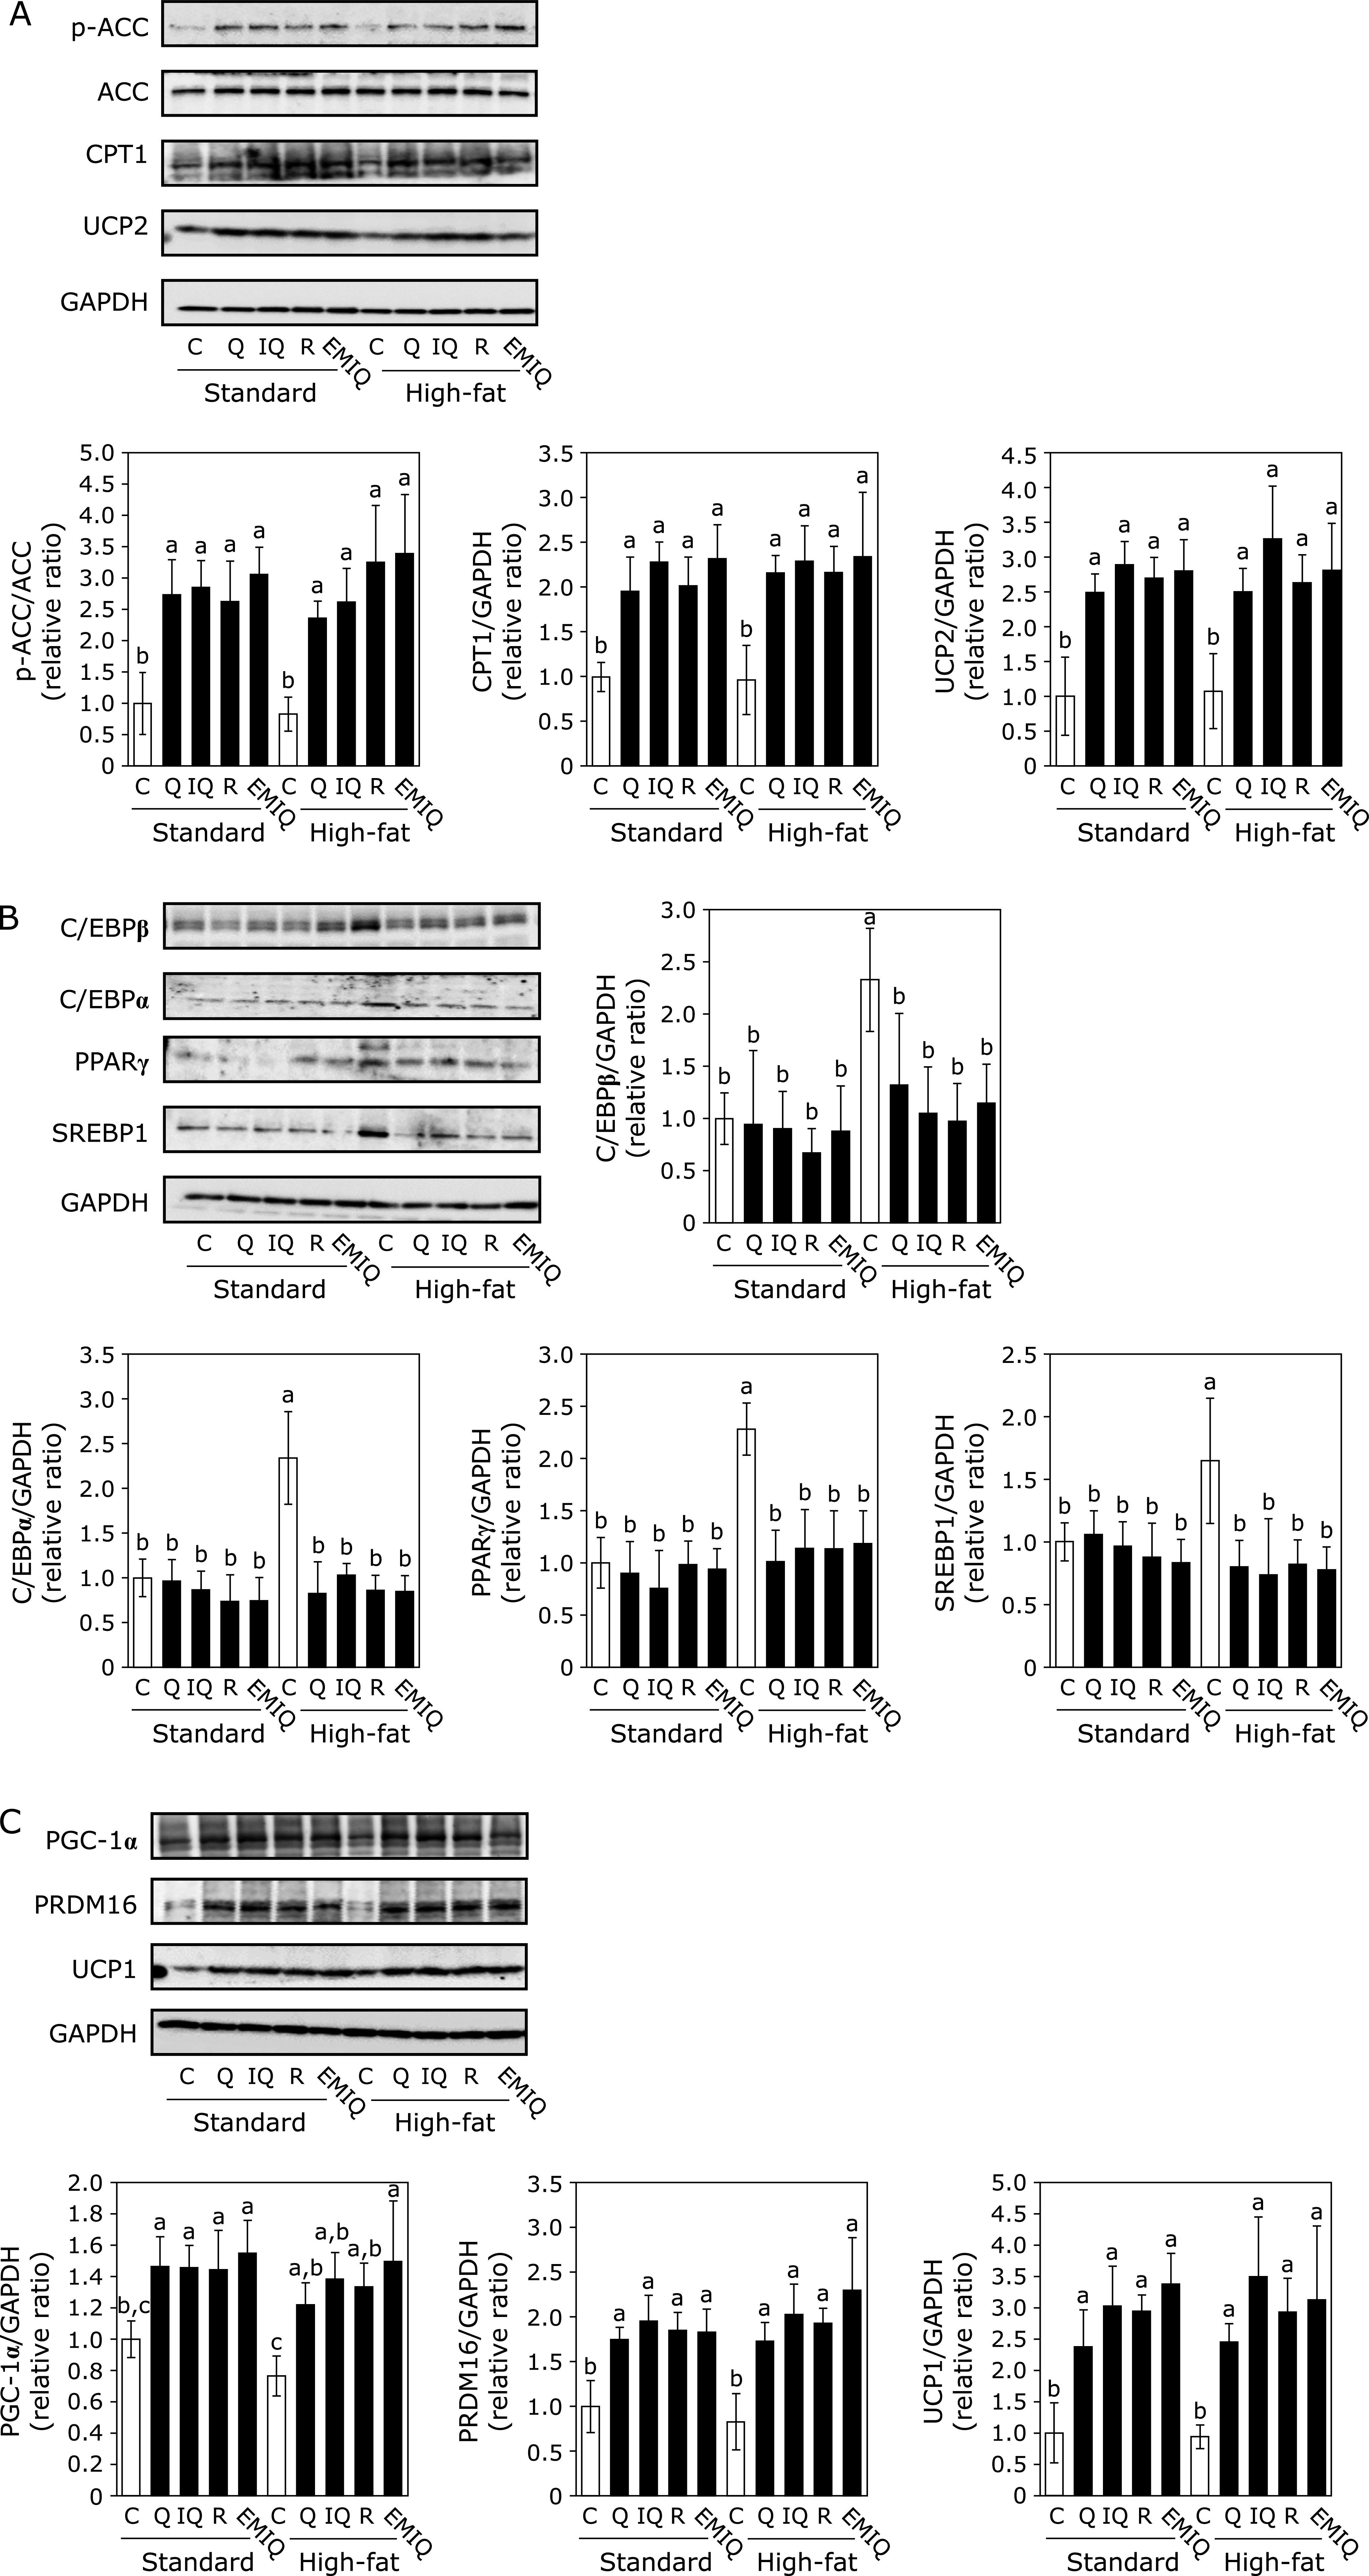 Effect of quercetin (Q), isoquercitrin (IQ), rutin (R), and EMIQ on the expression of adiposity-related proteins in WAT. The expression of (A) p-ACC, ACC, CPT1, UCP2, and GAPDH in the tissue lysate of WAT, the expression of (B) C/EBPβ, C/EBPα, PPARγ, SREBP1 and GAPDH in tissue lysate of WAT and the expression of (C) PGC-1α, PRDM16, UCP1,and GAPDH in tissue lysate of WAT were determined by Western blot analysis. Each panel shows a typical blot from five animals. The normalized density of specific protein band shown in the bar graphs. Values were shown as the mean ± SE ( n = 5). Different letters indicate significant differences among the groups by Tukey-Kramer multiple comparison test ( p